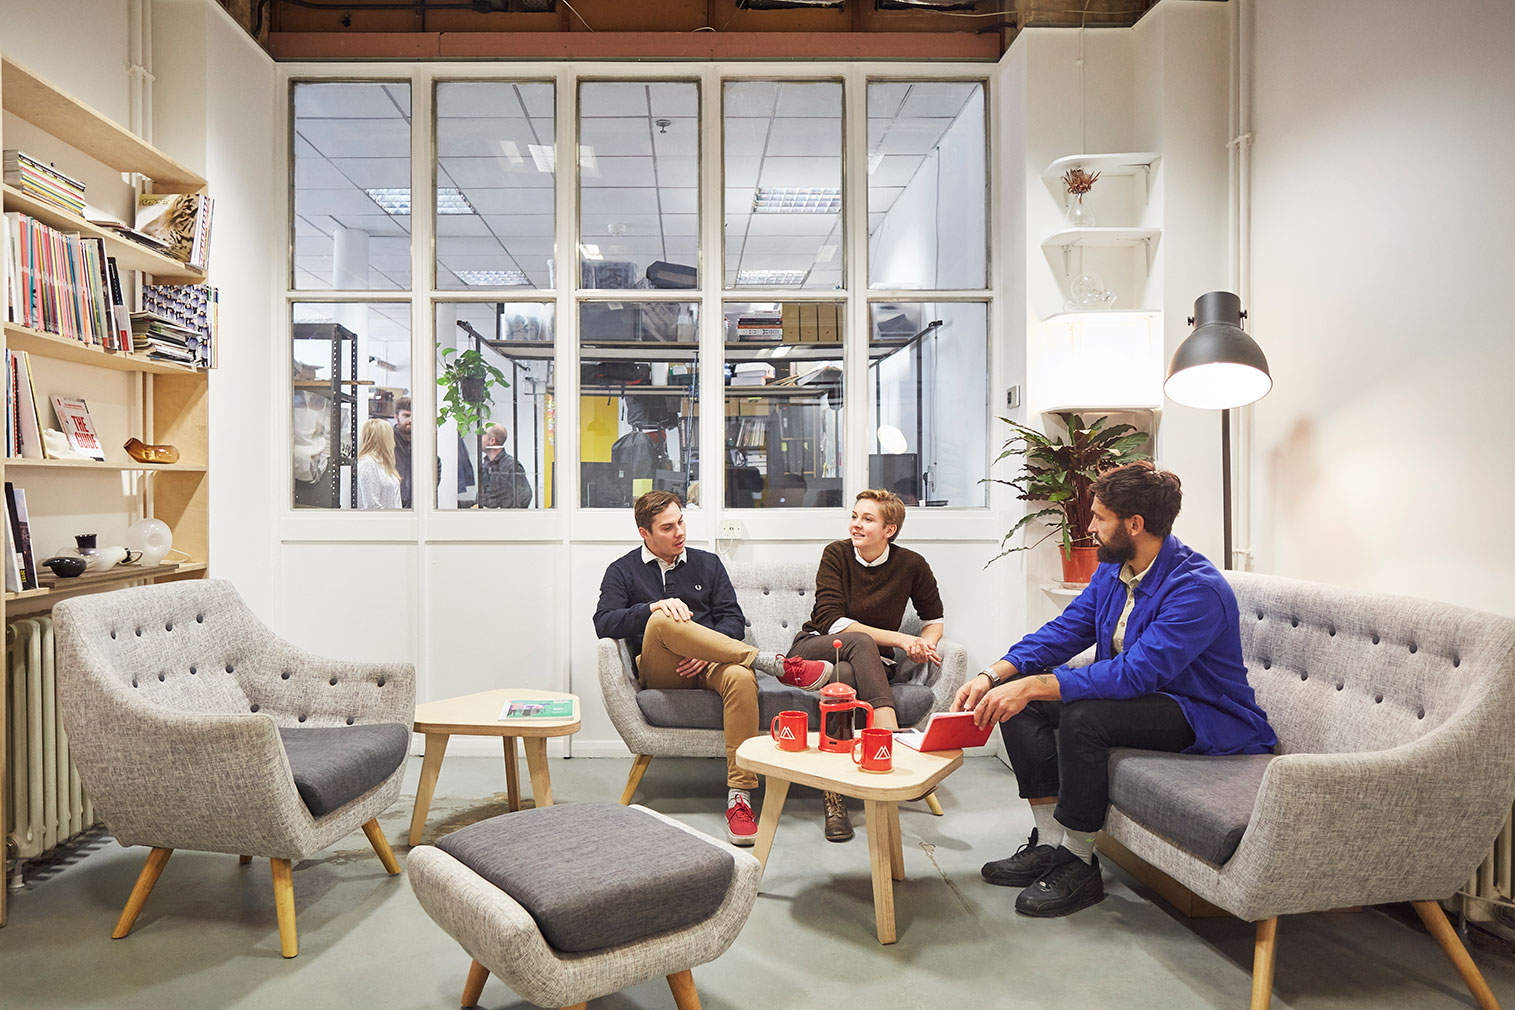 London coworking spaces at Makerversity